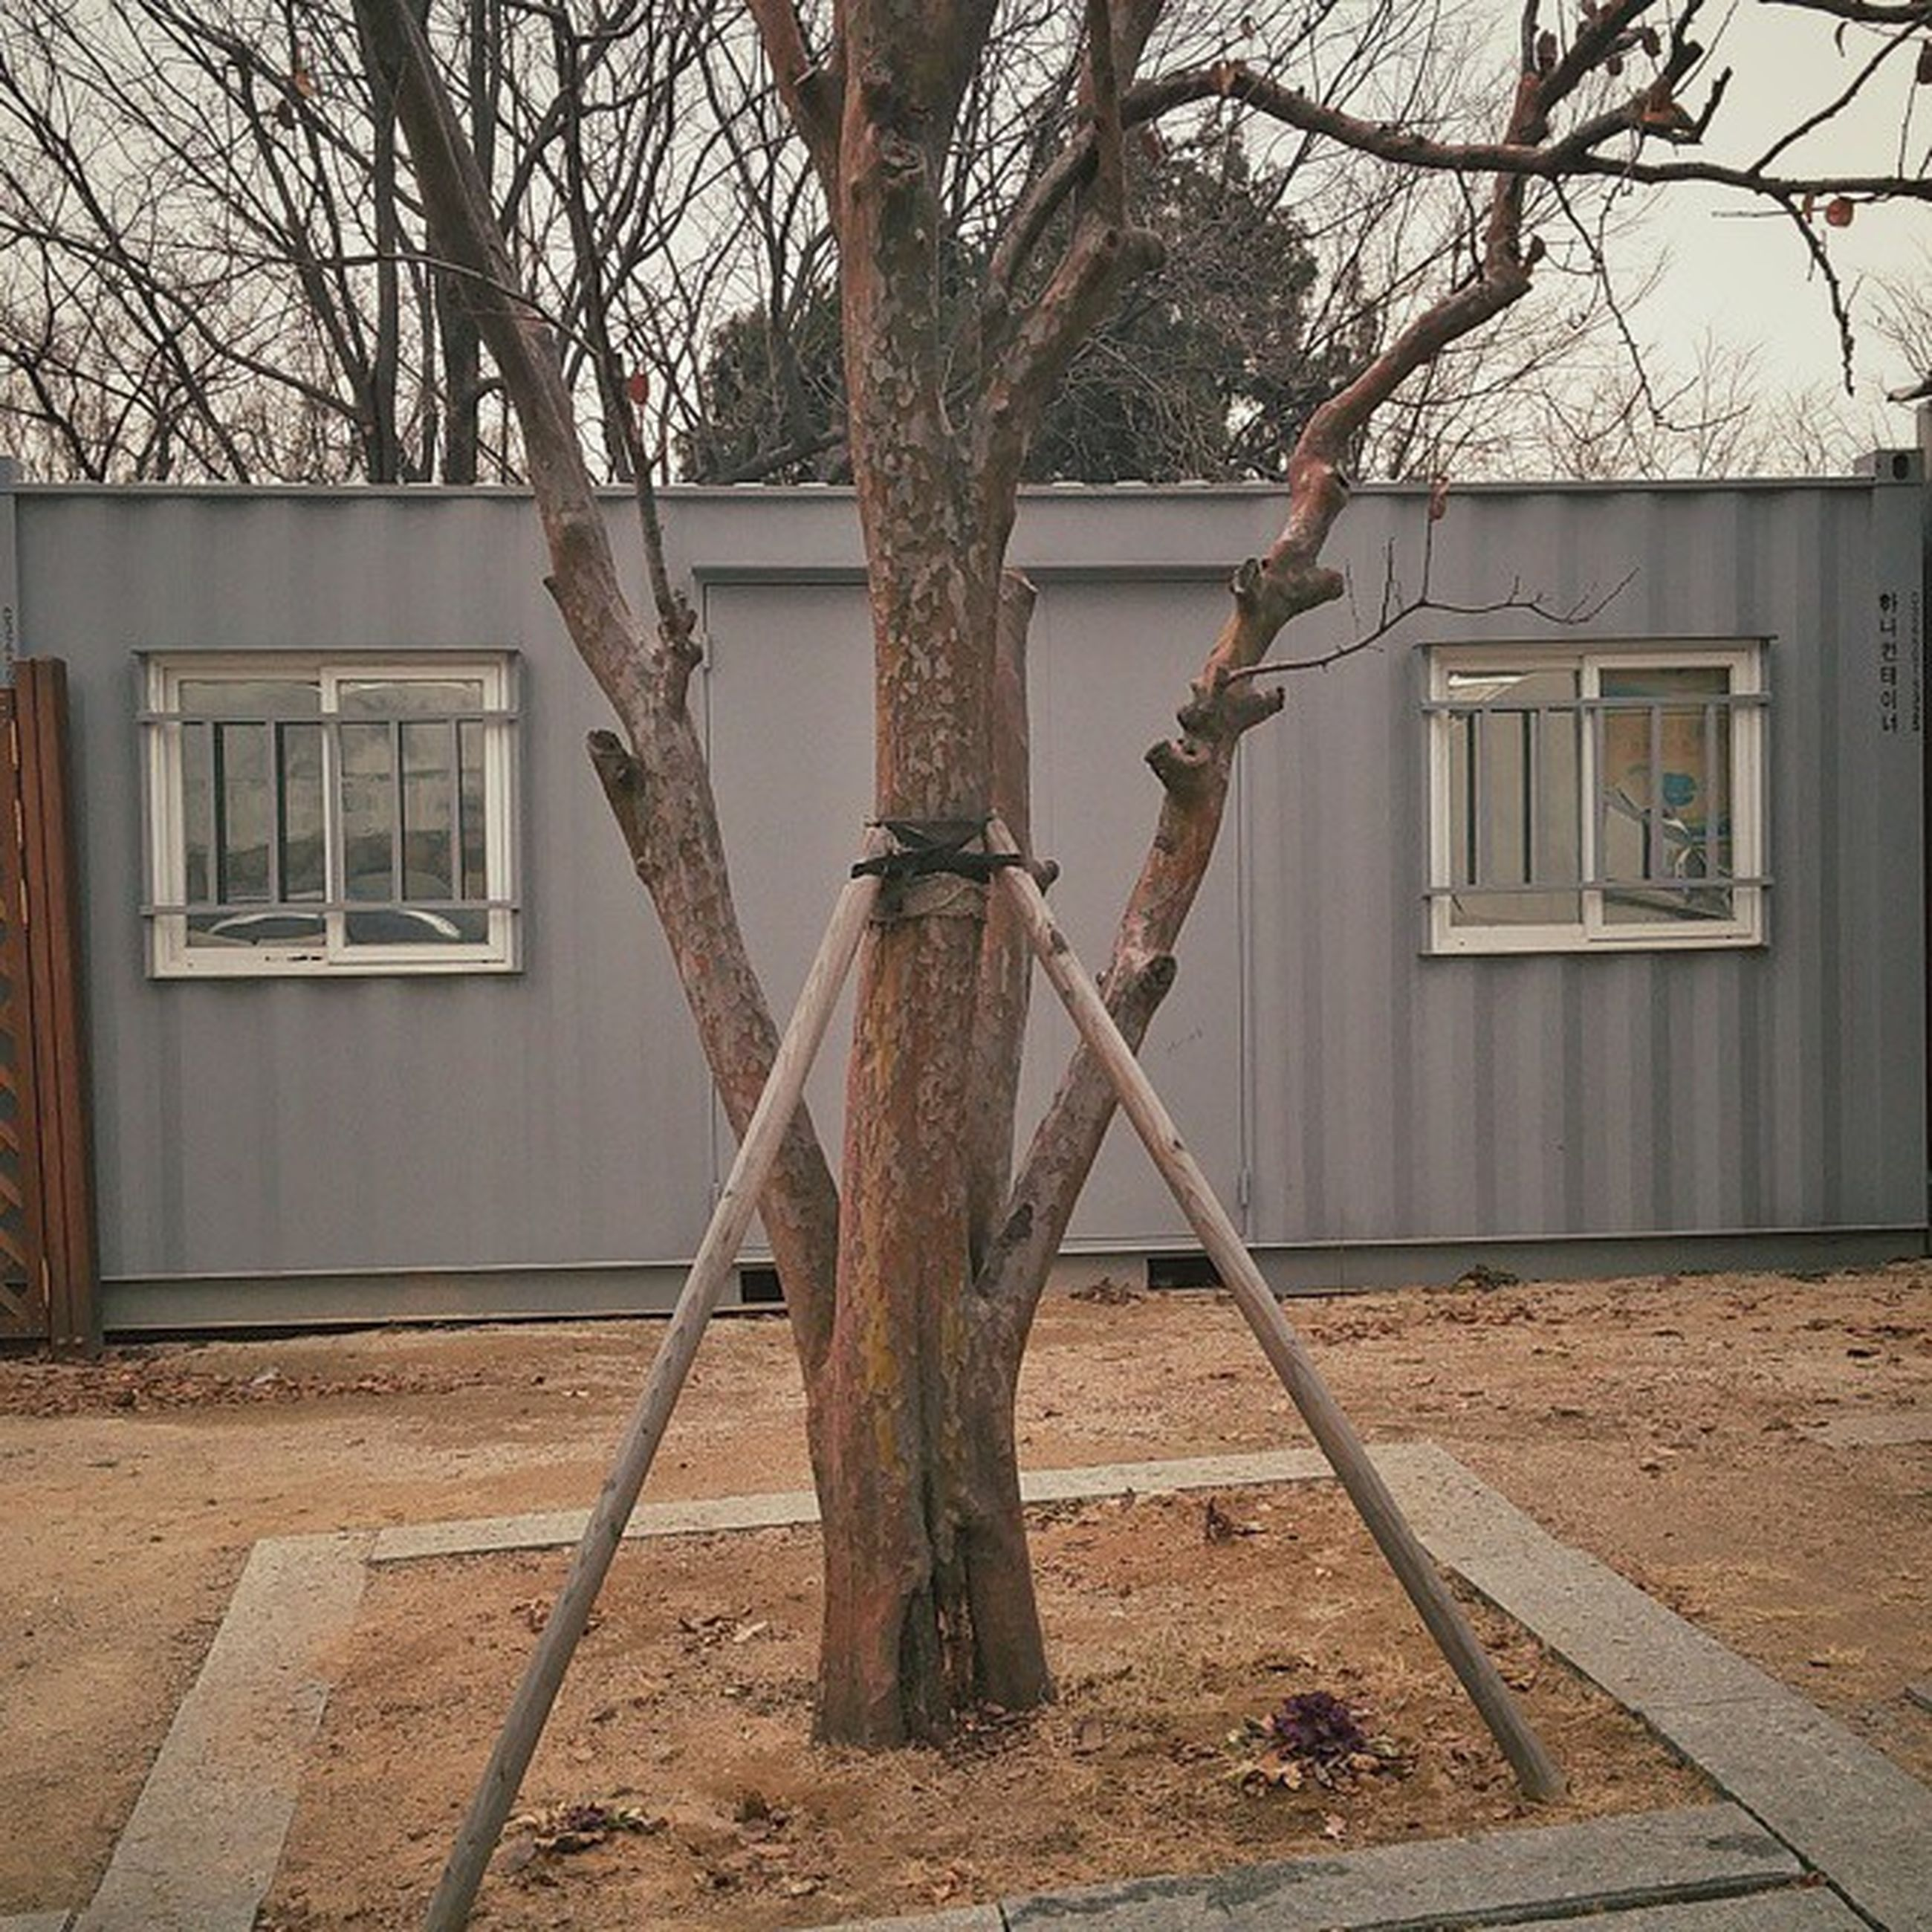 building exterior, architecture, built structure, tree, bare tree, branch, house, window, tree trunk, residential structure, day, residential building, shadow, outdoors, no people, sunlight, city, building, absence, door